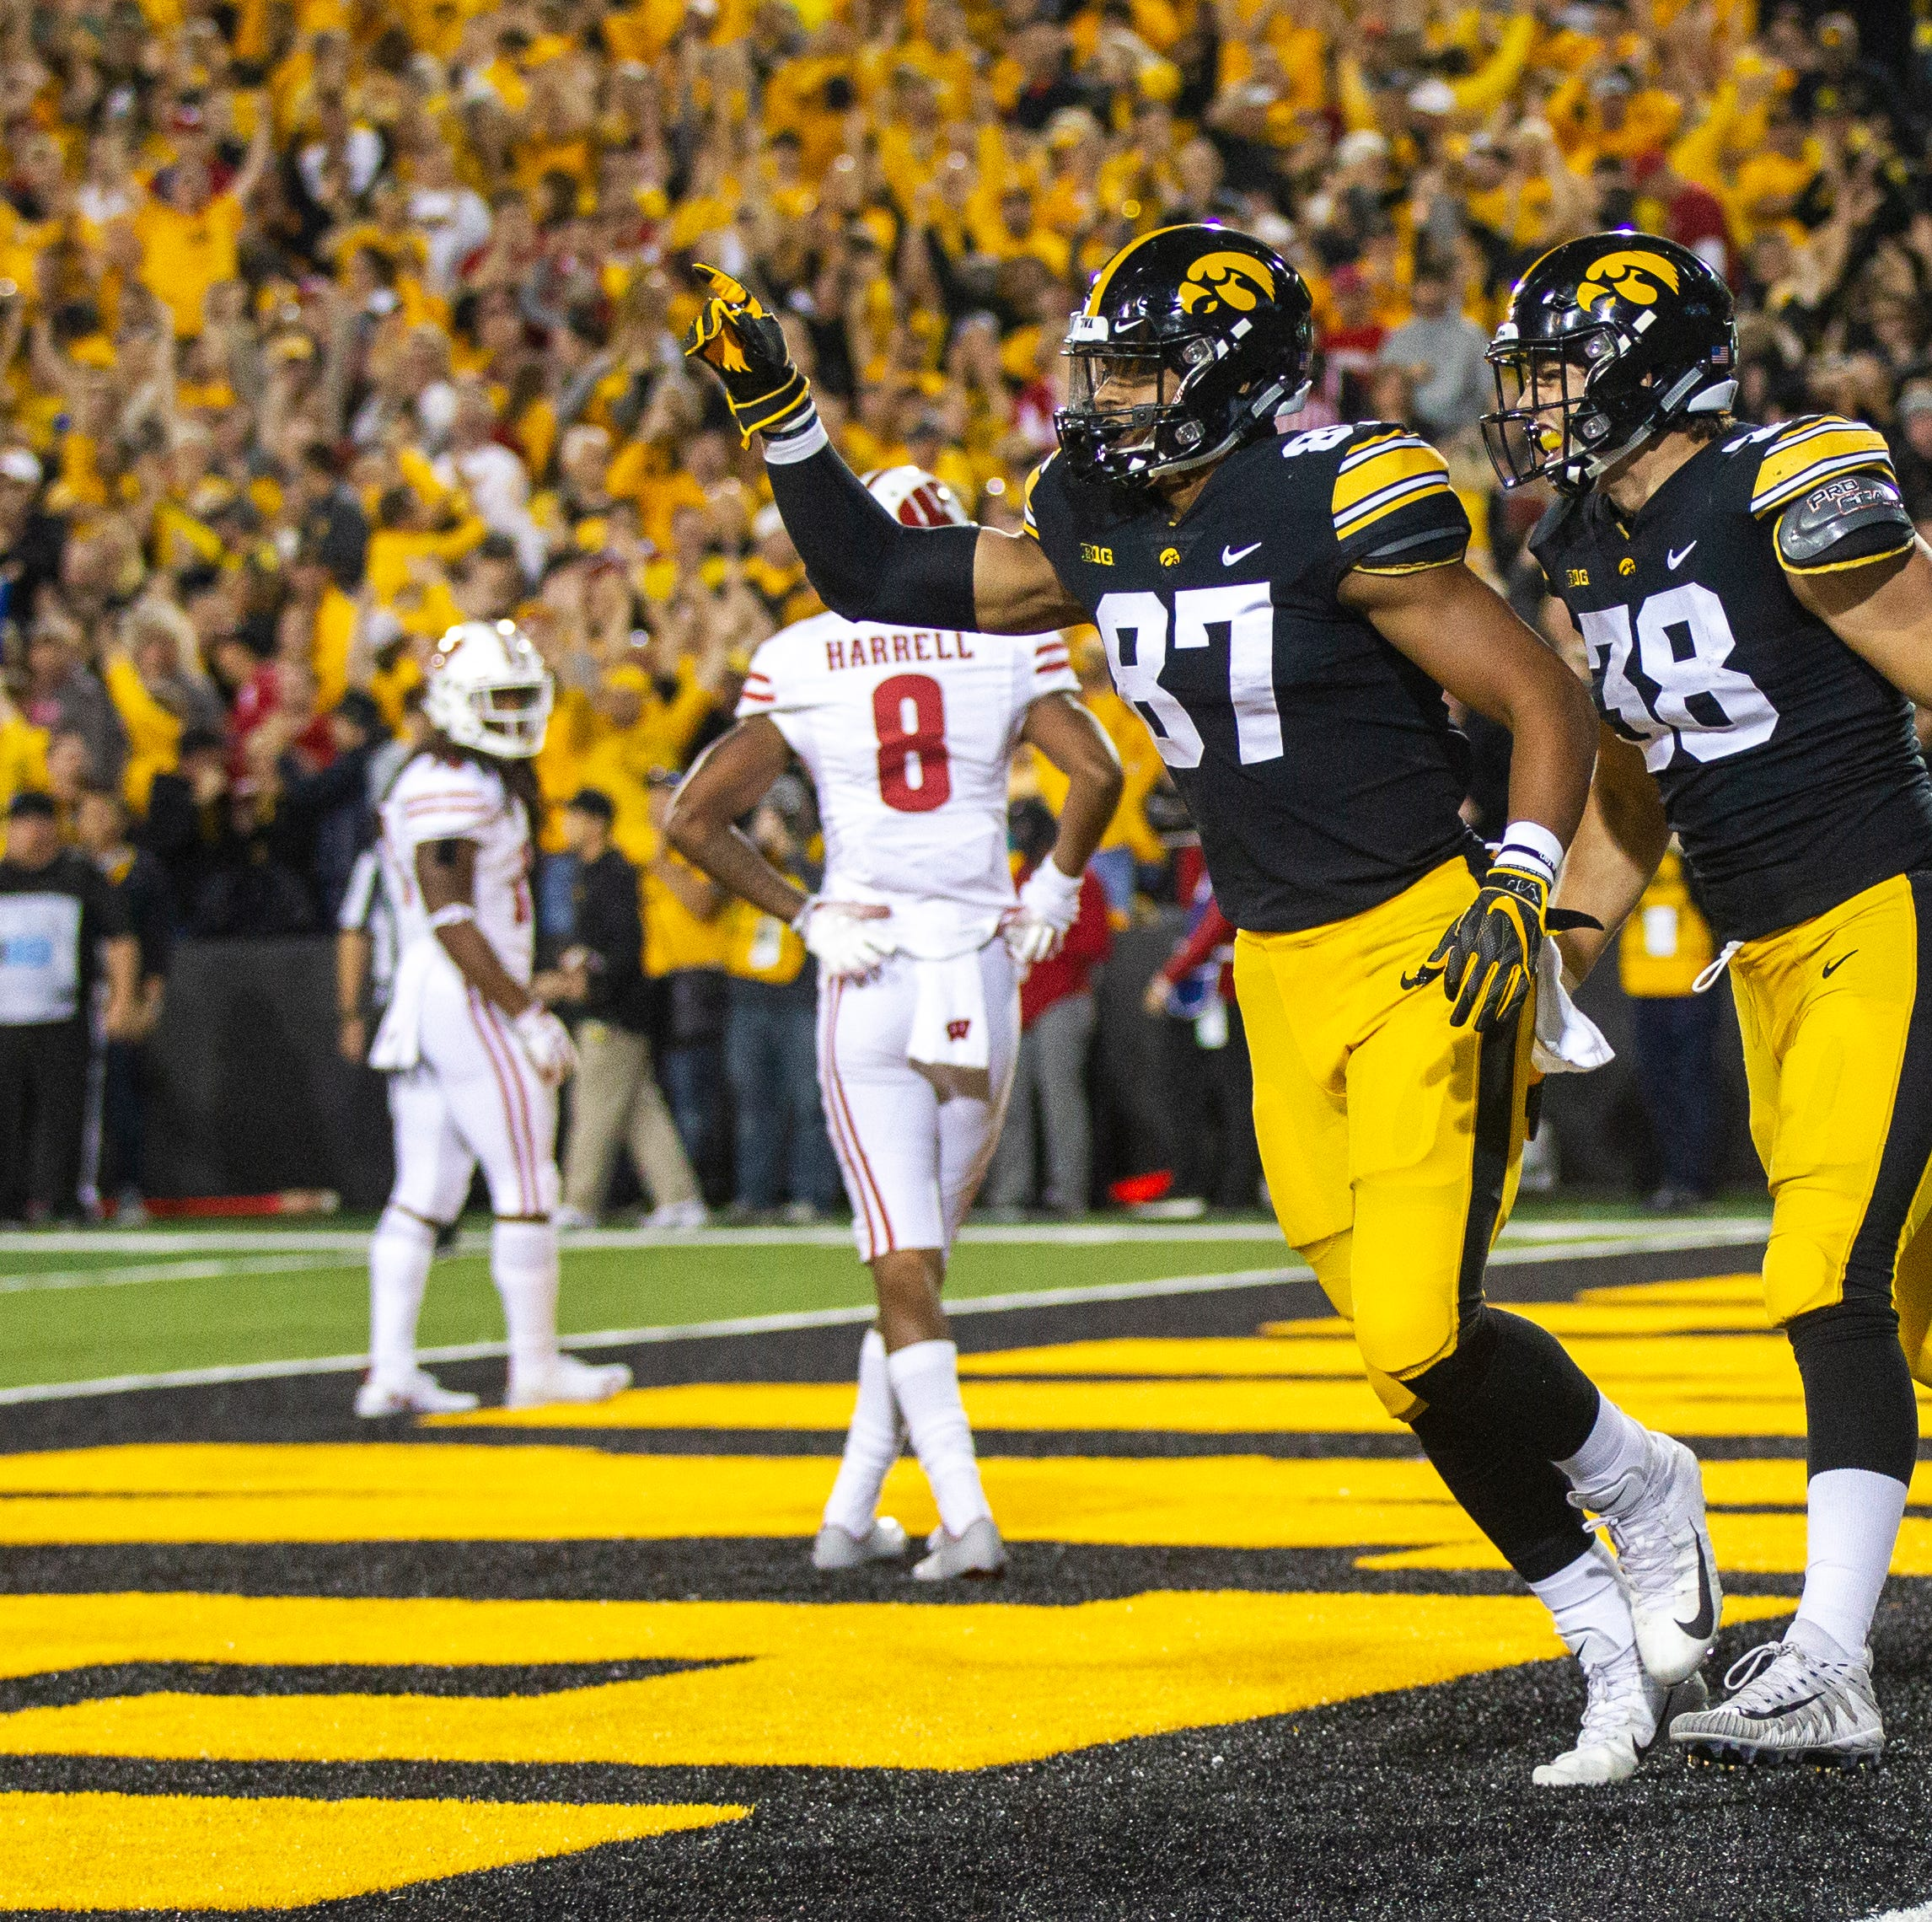 Former Iowa TEs Fant, Hockenson both selected to attend NFL Draft in Nashville